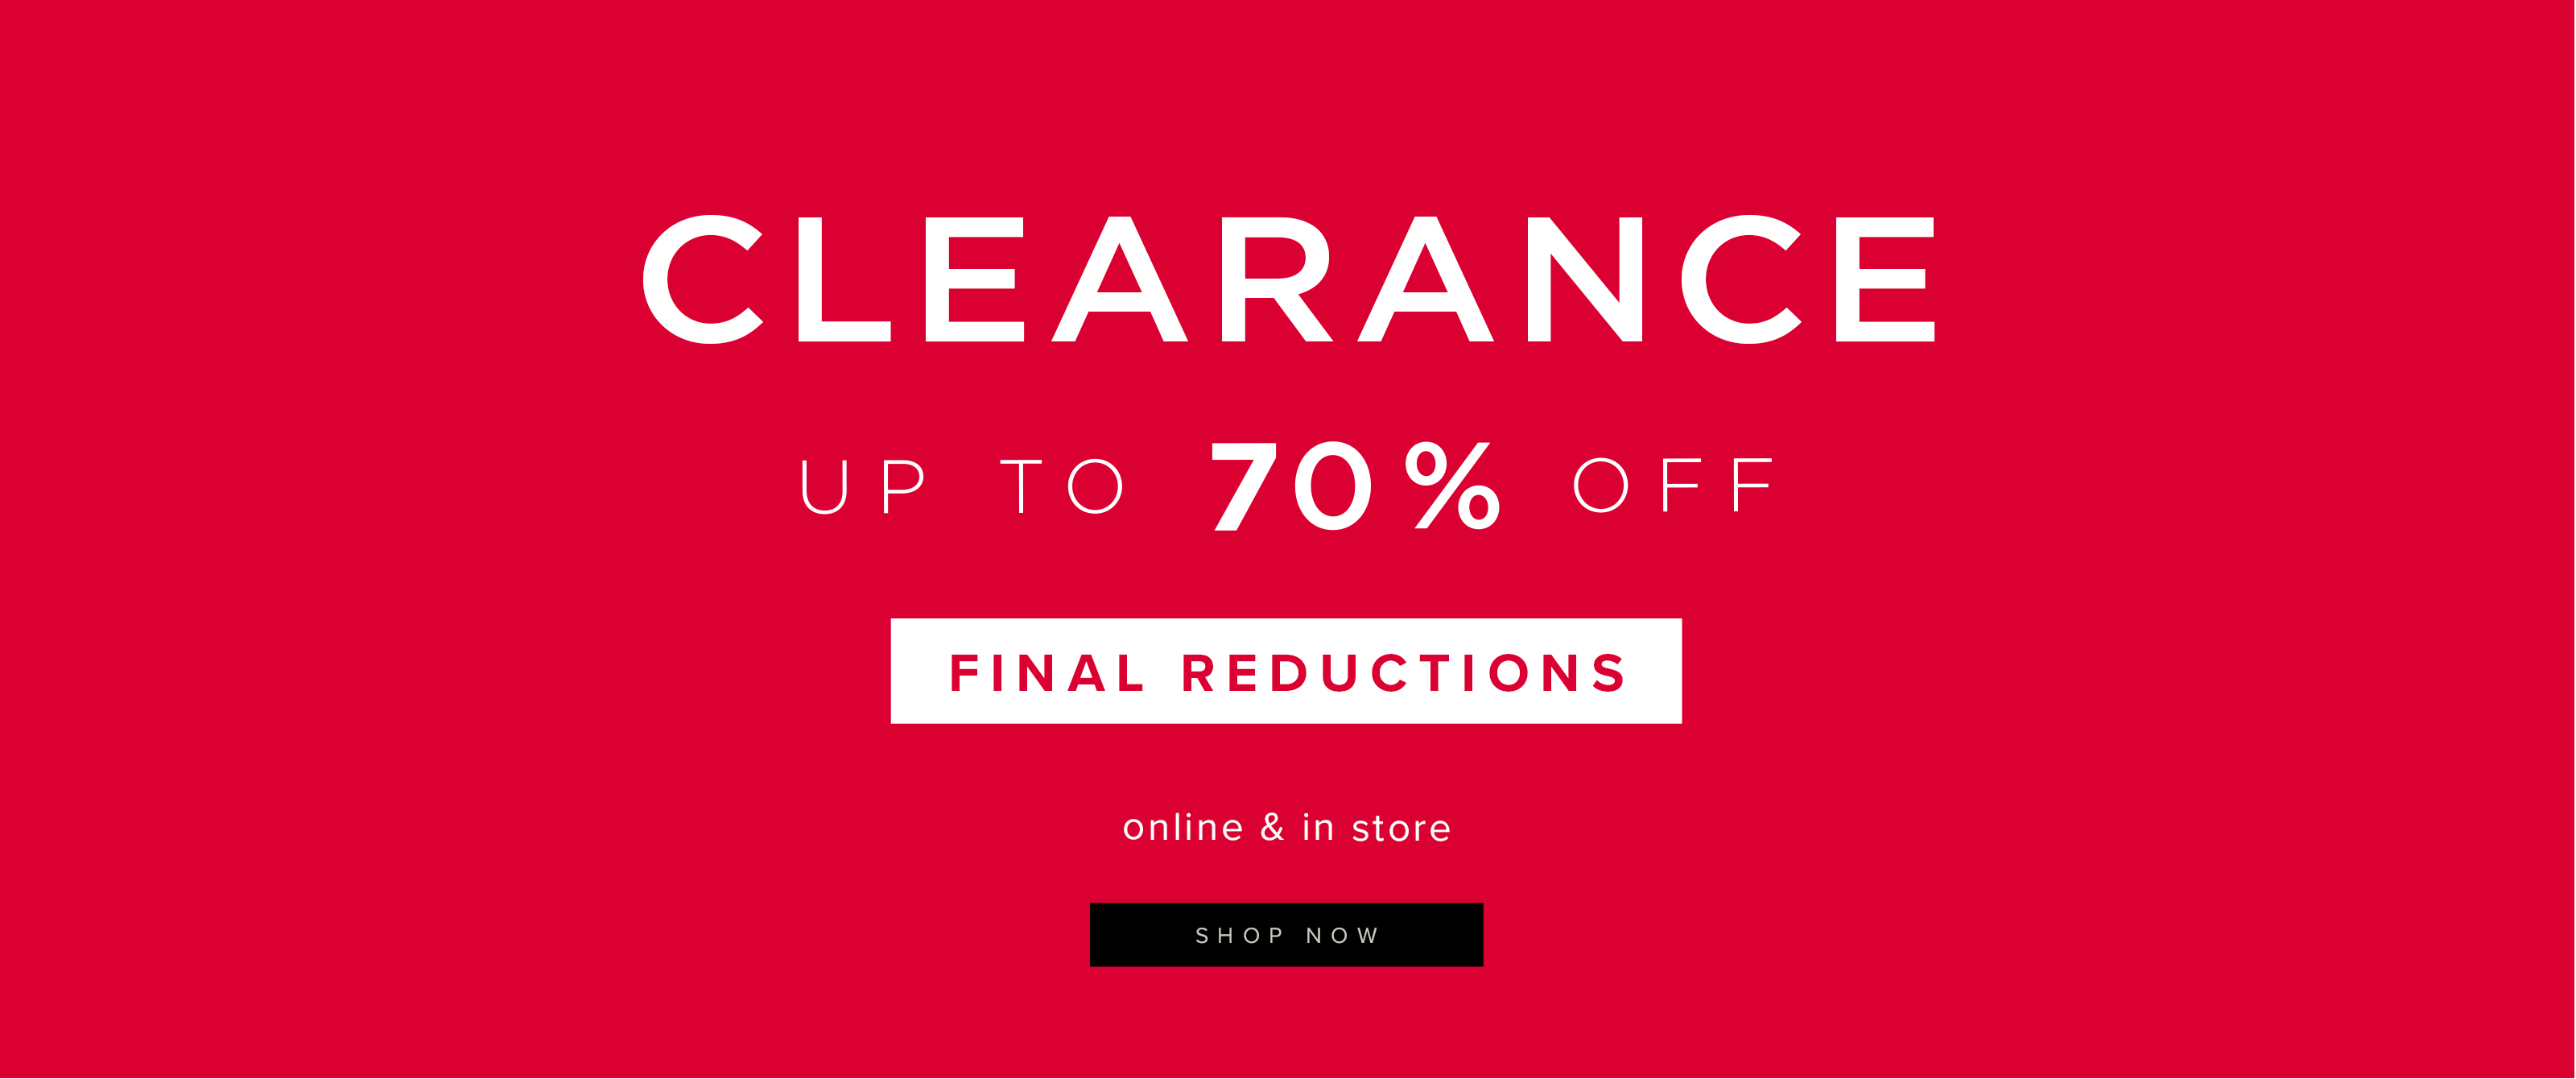 ClearanceFinal Reductions